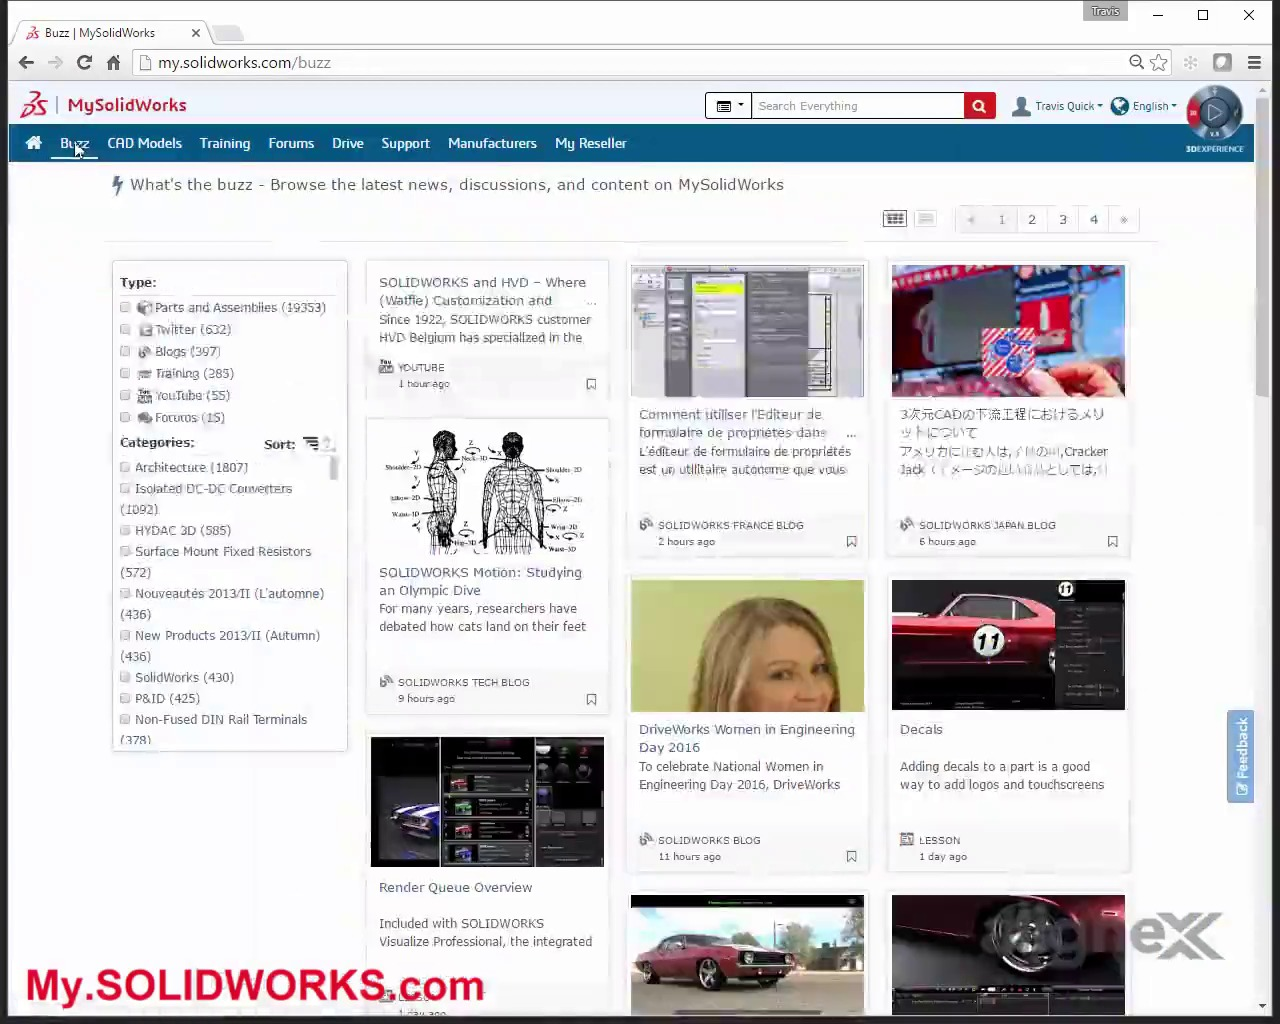 Top 5 Training Videos on My.SOLIDWORKS.com [VIDEO]